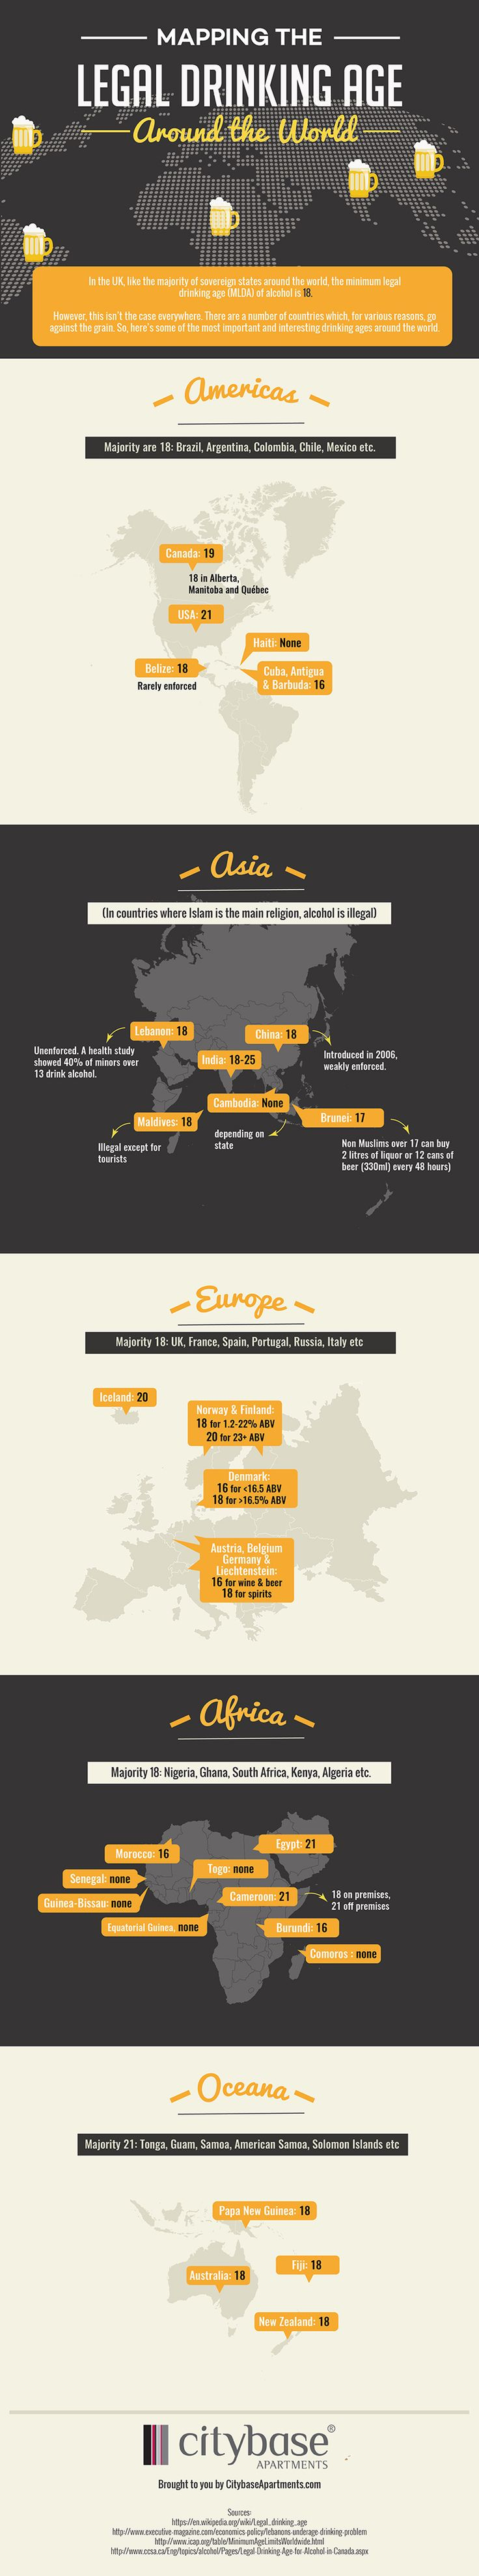 The Legal Drinking Age Around the World | Blog | Citybase